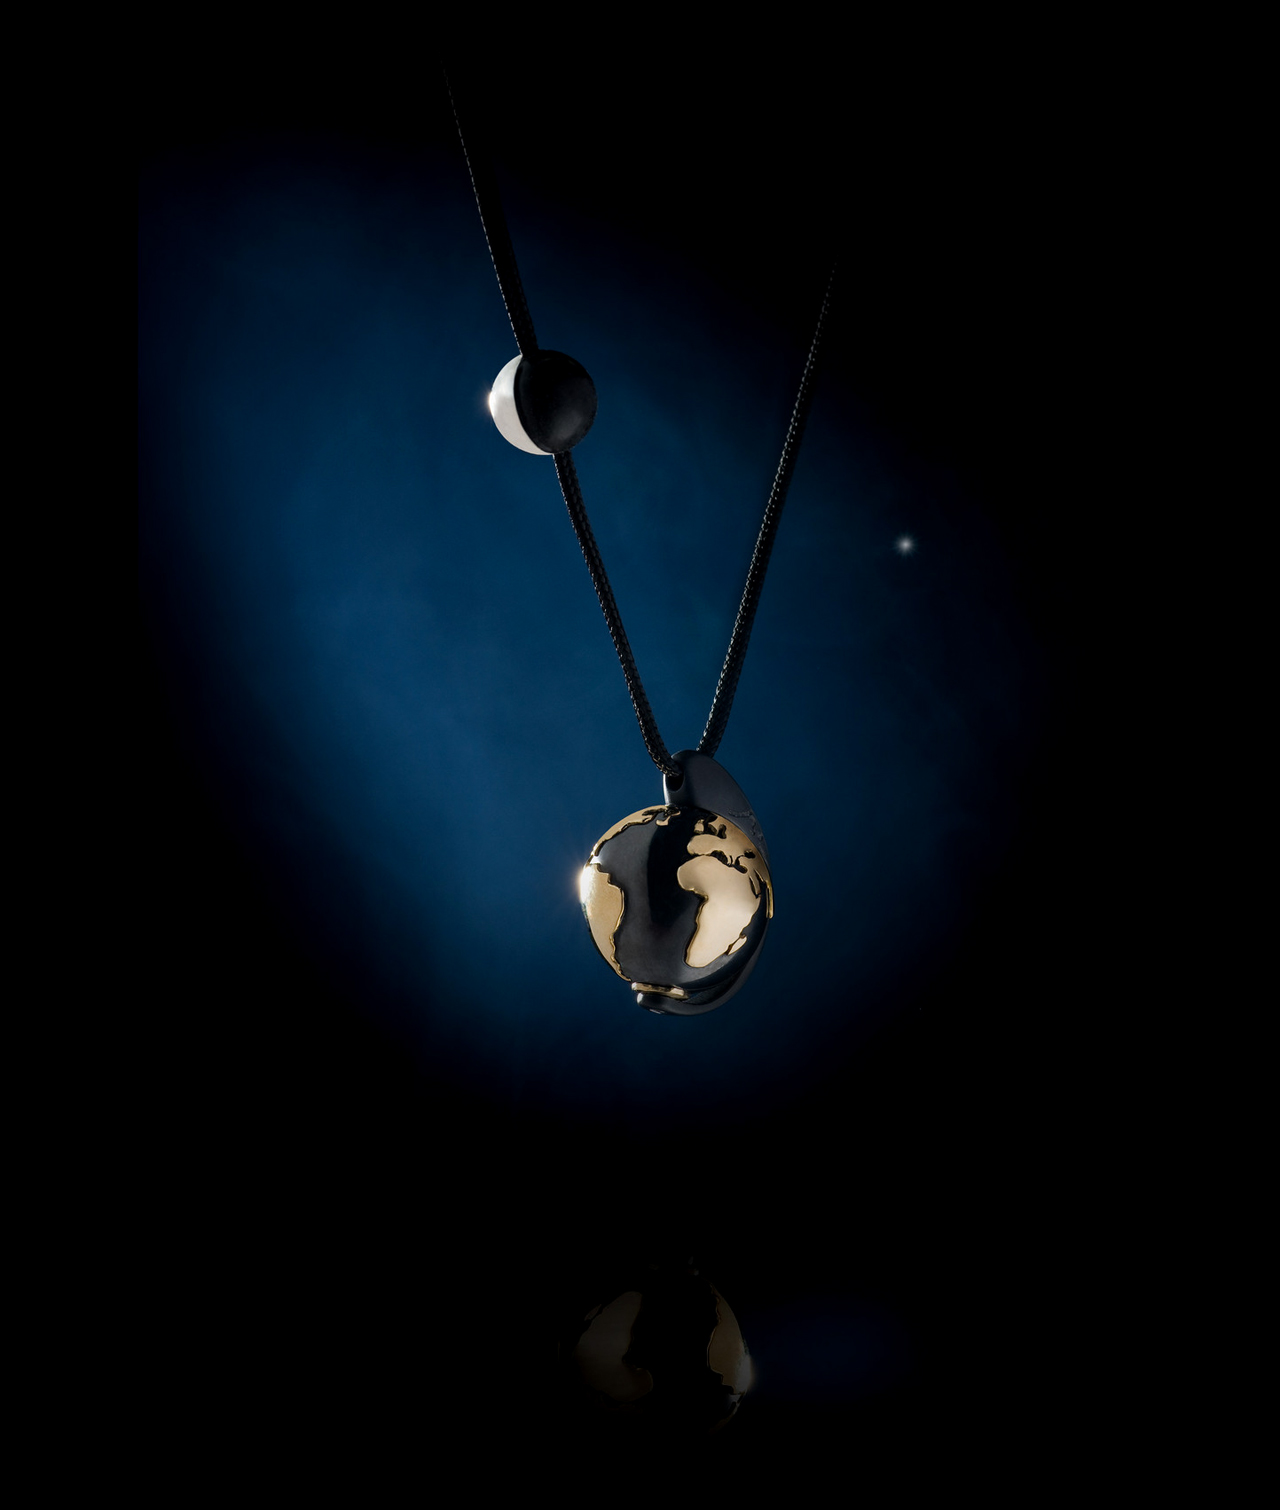 Earth and Moon, 2008, silver & gold, black cord. Photo by Alexandros Botonakis.